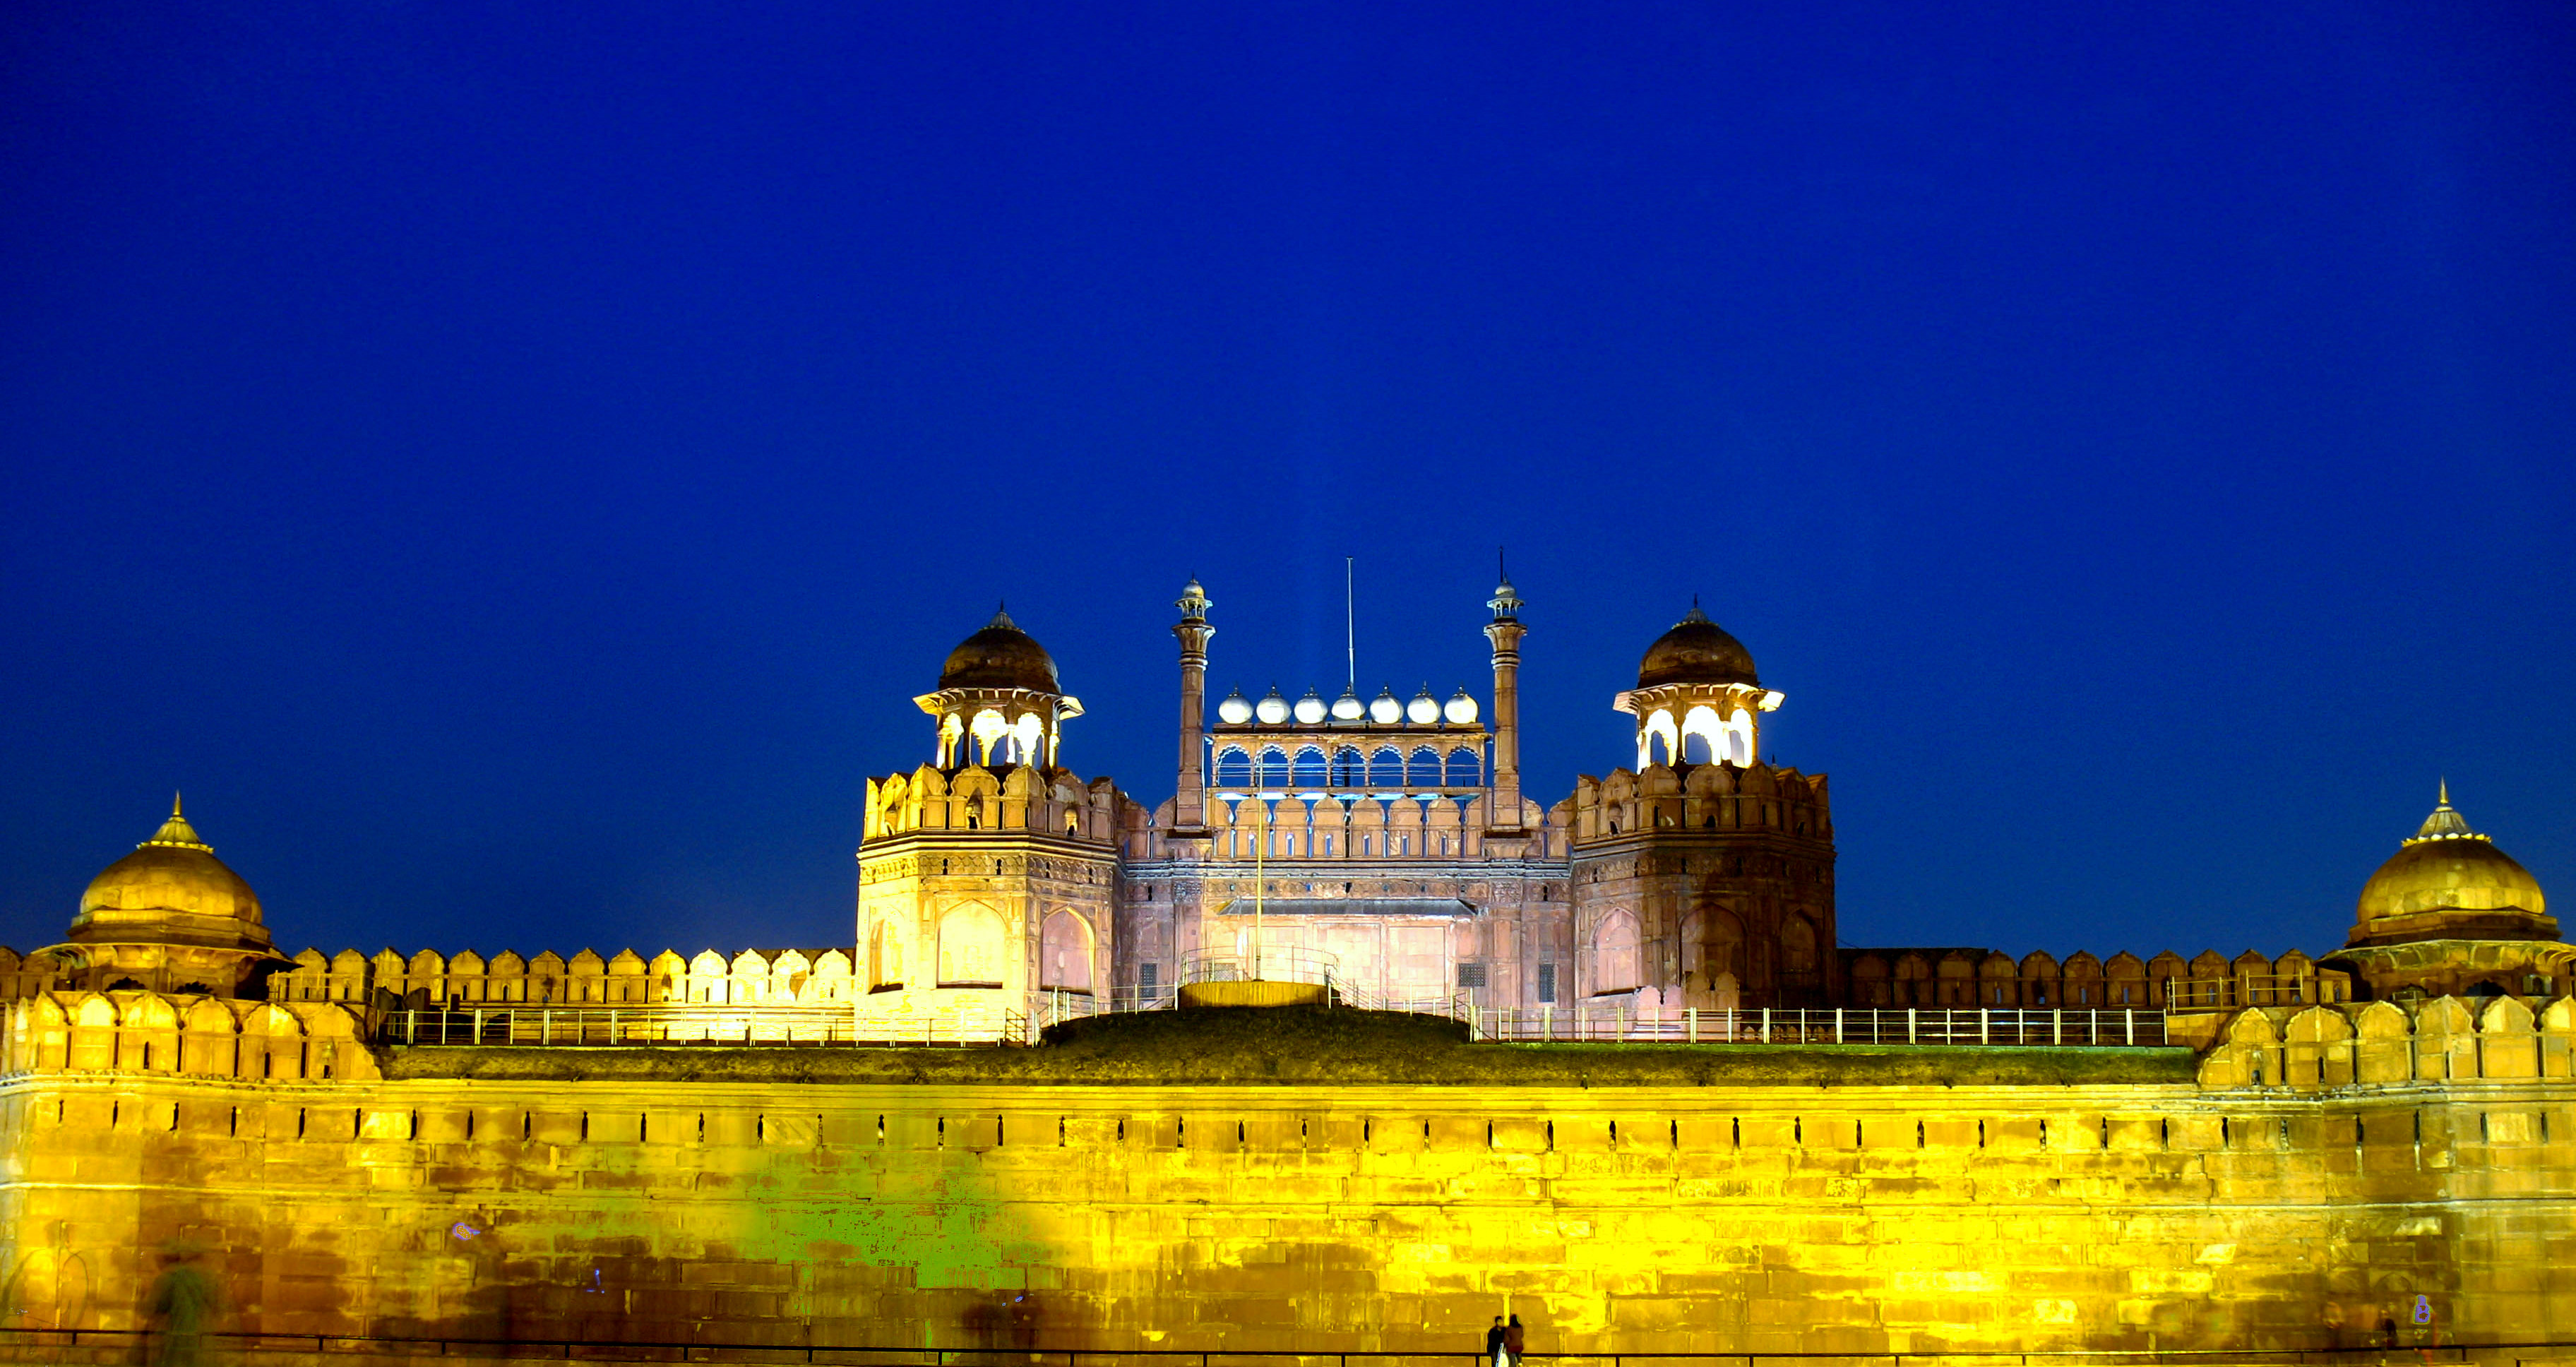 Red fort historical facts and pictures the history hub for Diwan name wallpaper